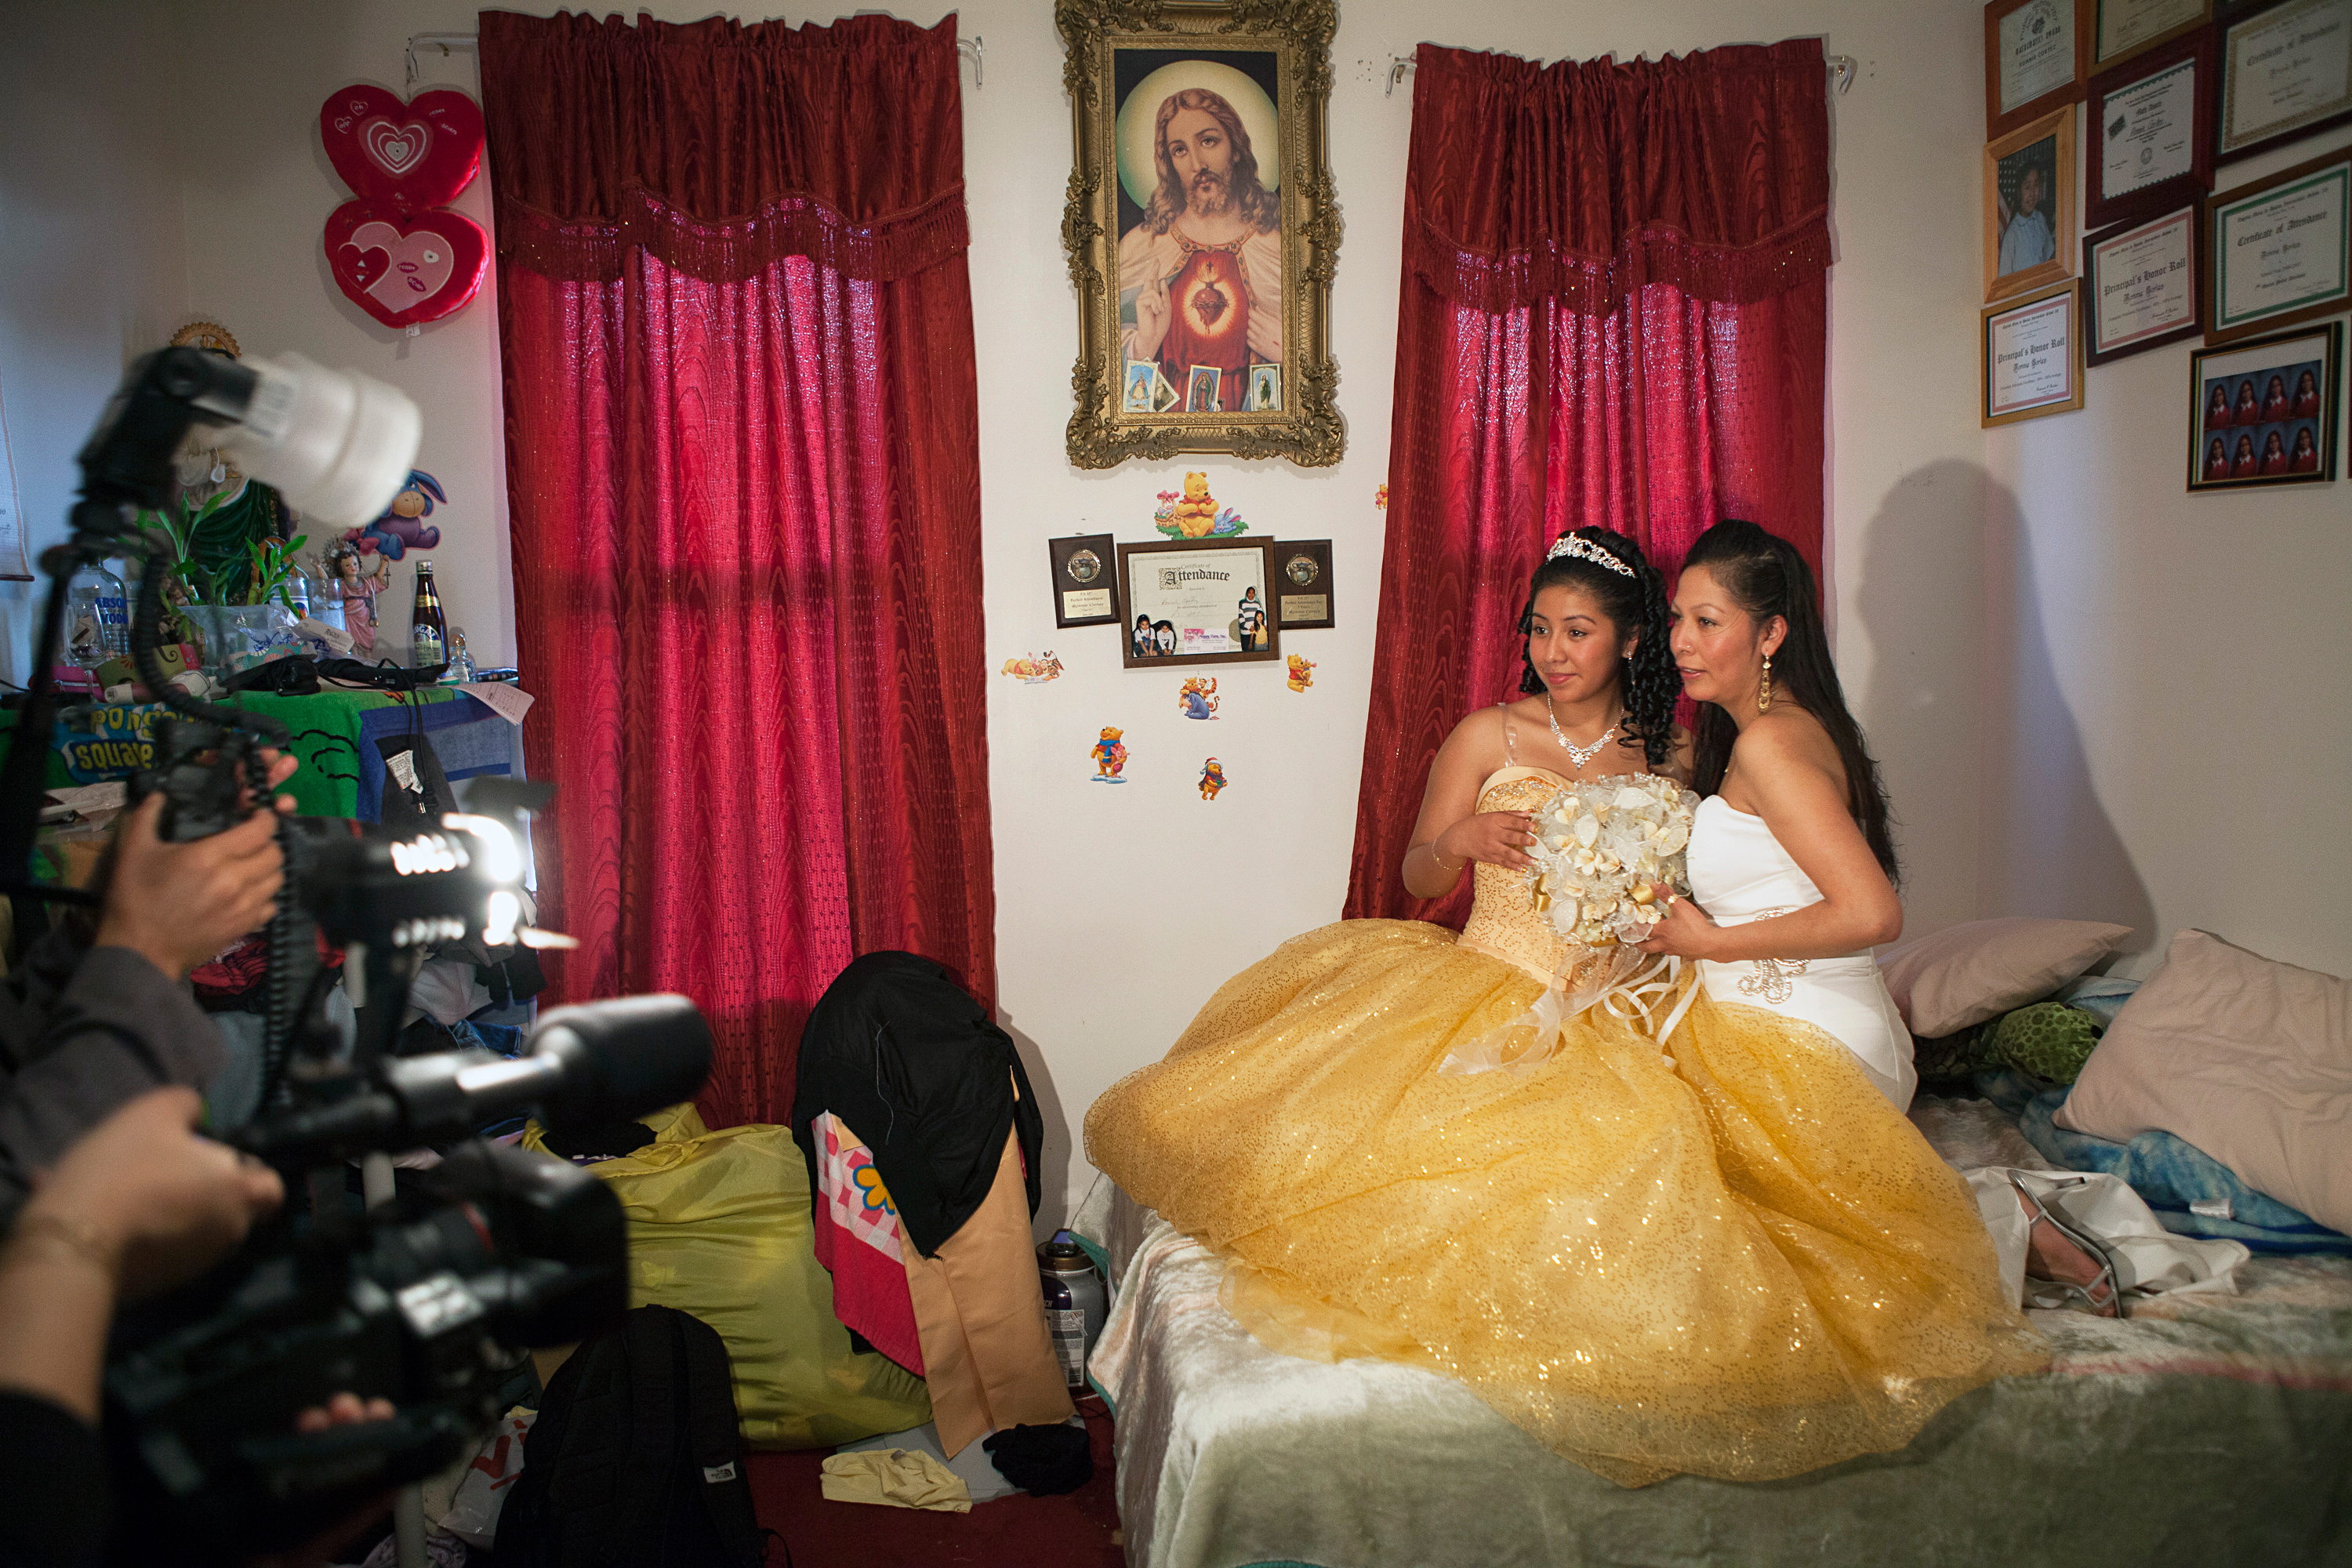 """<strong>More than 400,000 Hispanic girls celebrated quinceañeras in 2011. Each family spent an average of $5,000 to $10,000, adding up to a $2 million- to $4 million-dollar industry, states <a href=""""http://corporate.univision.com/2011/09/latina-moms-and-the-quinceanera-tradition/"""" title=""""Univision – Latina Moms and the Quinceañera Tradition"""" target=""""_blank"""">Univision Communications.</a></strong>                                                                              Title: """"Ronnie and her mom pose for a photographer and videographer they've hired to document Ronnie's Quinceañera, Brooklyn, NY,"""" from the series <em><a href=""""http://www.rebeccagreenfield.com/#a=0&amp;at=0&amp;mi=2&amp;pt=1&amp;pi=10000&amp;s=0&amp;p=5"""" title=""""Coming of Age"""" target=""""_blank"""">Coming of Age.</a></em>"""